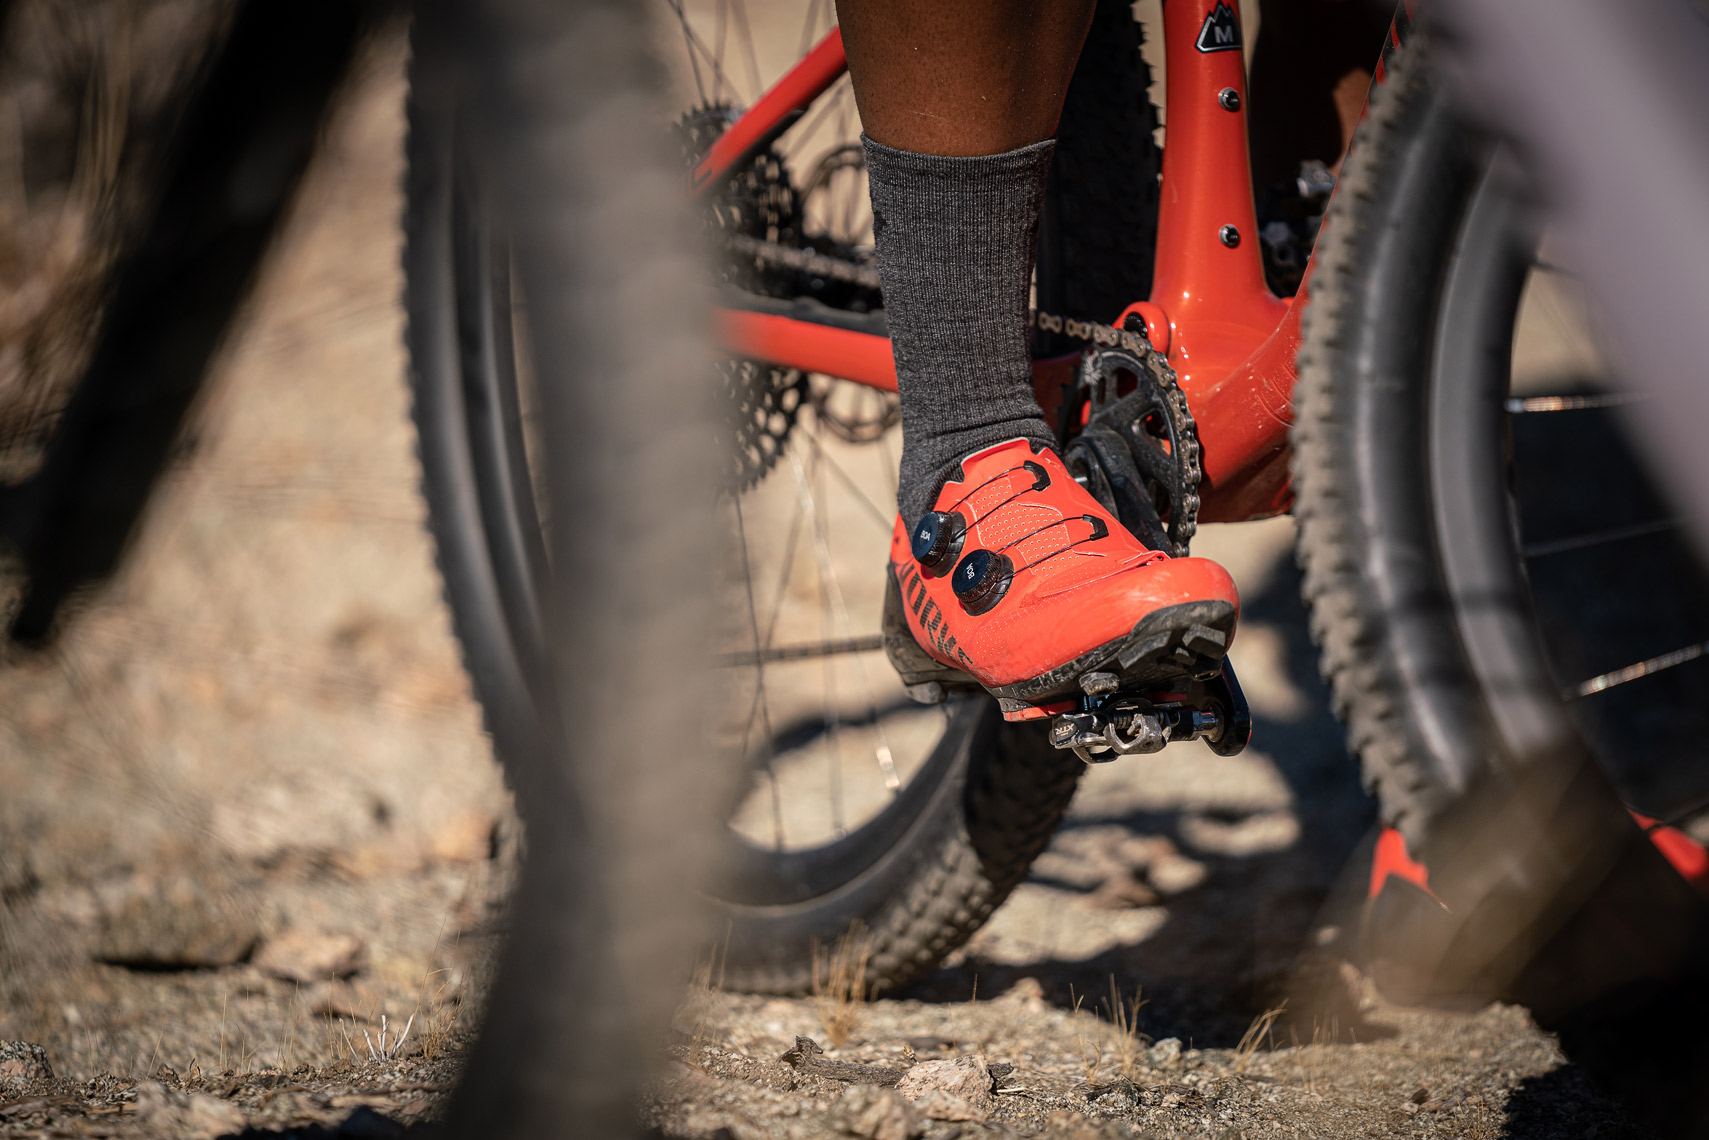 Specialized_S21_MTB_Clothing_Palm_Springs_VanWeelden-286